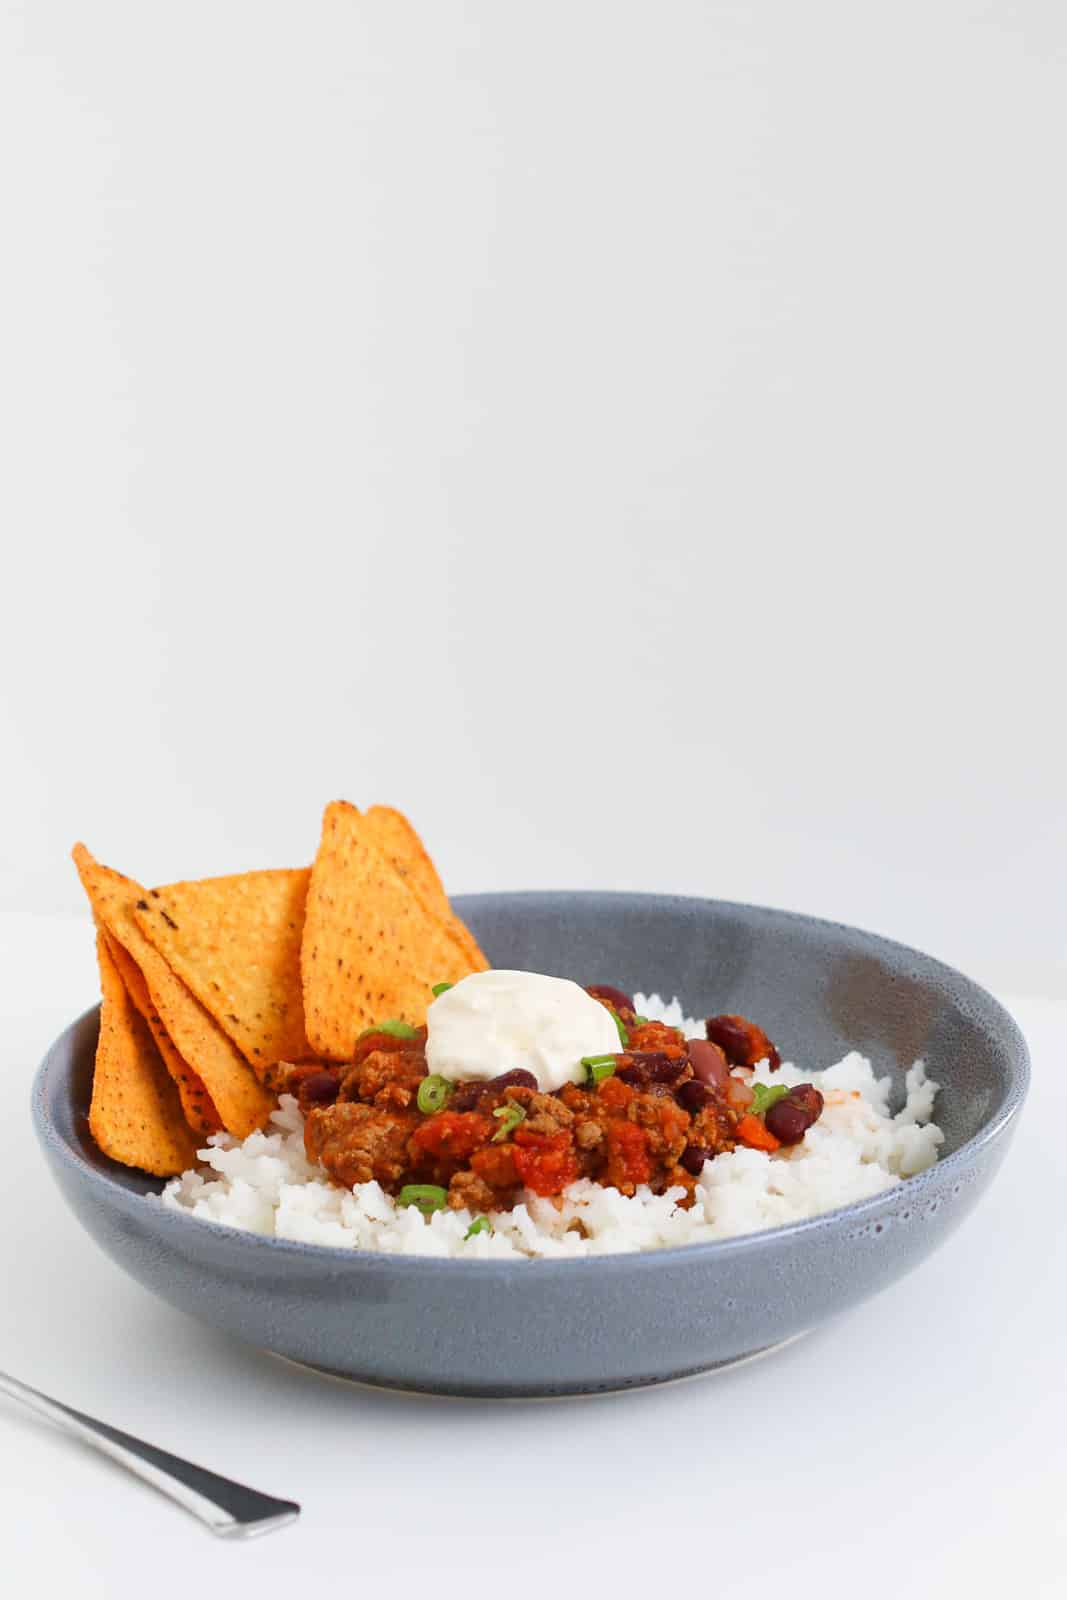 A blue bowl filled with chilli con carne, corn chips, sour cream, rice and spring onions.